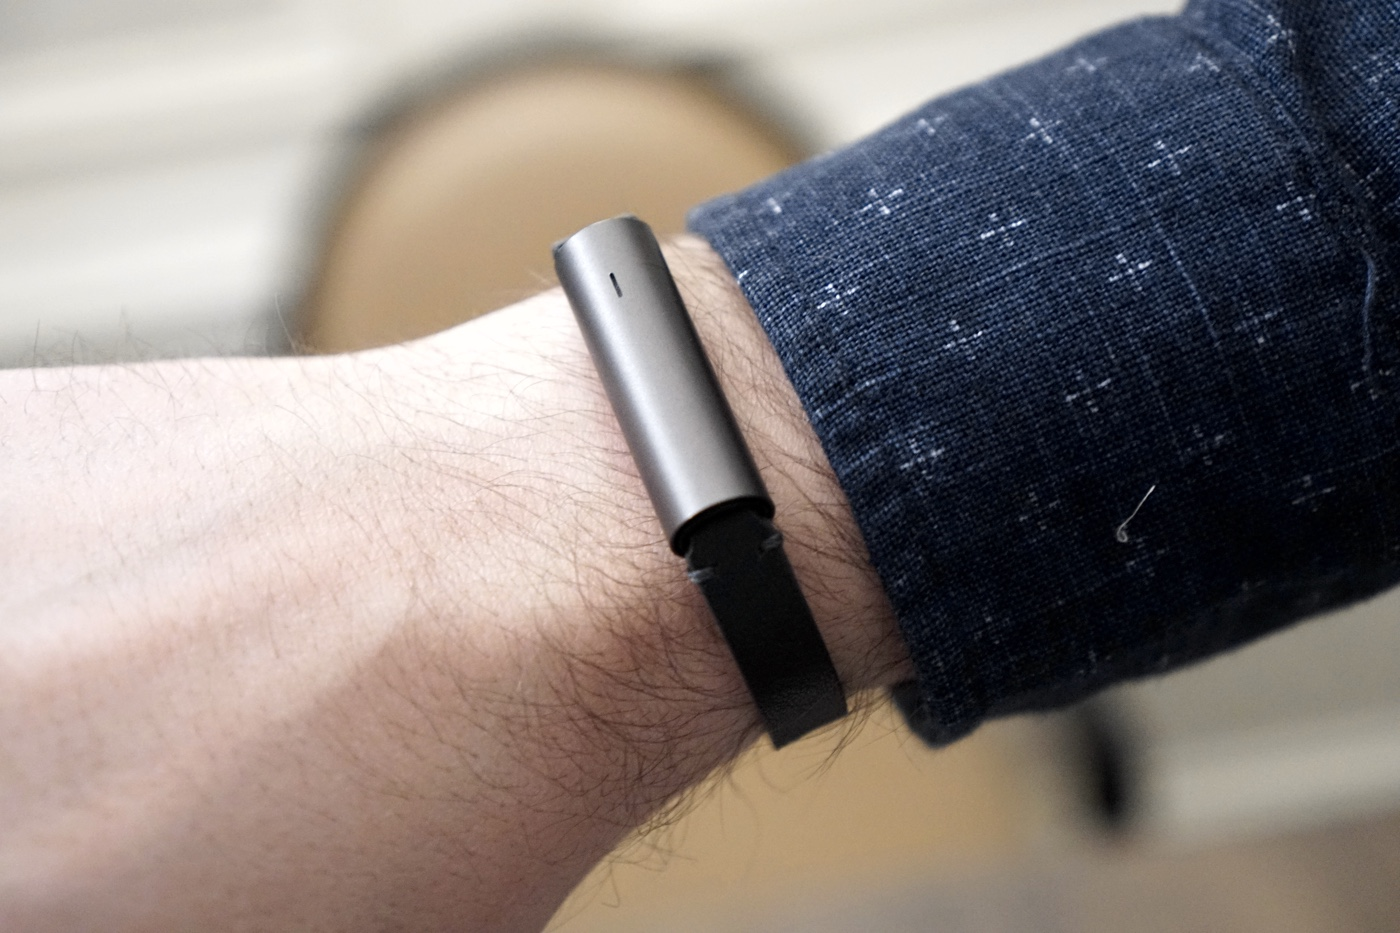 Misfit Ray: A stylish wearable that complements your watch